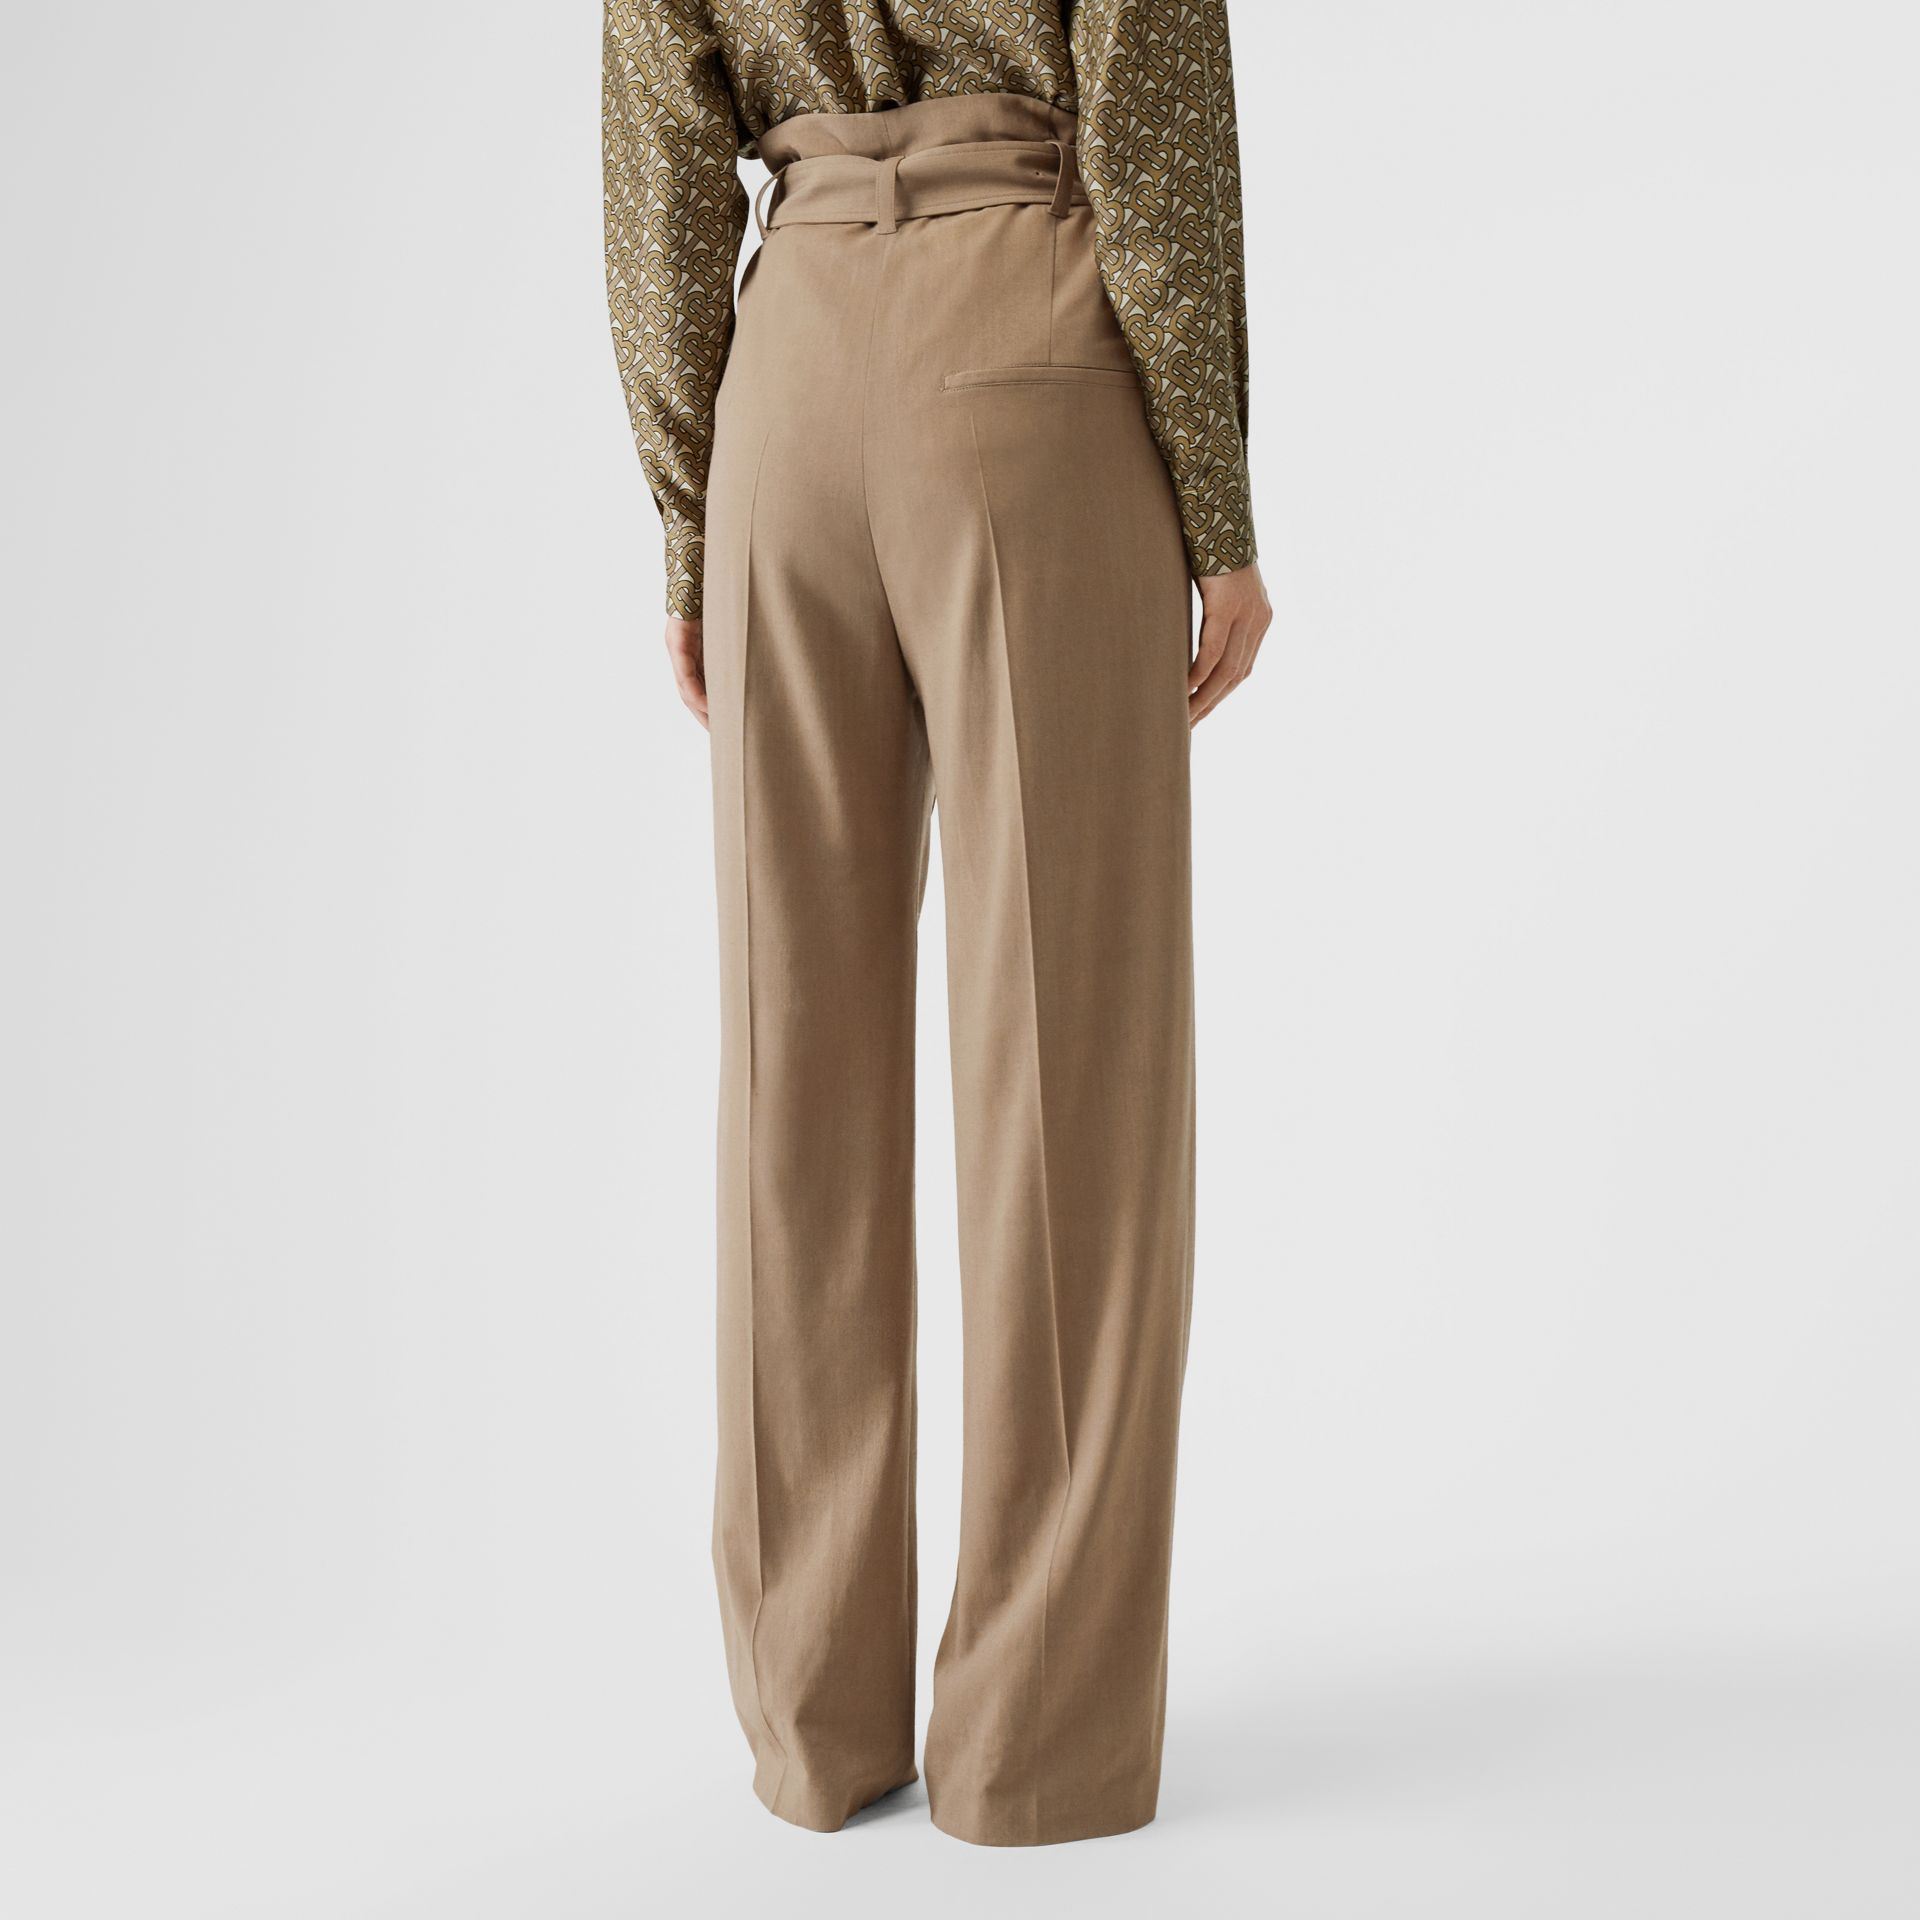 Wool Blend High-waisted Trousers in Warm Taupe - Women | Burberry Australia - gallery image 2